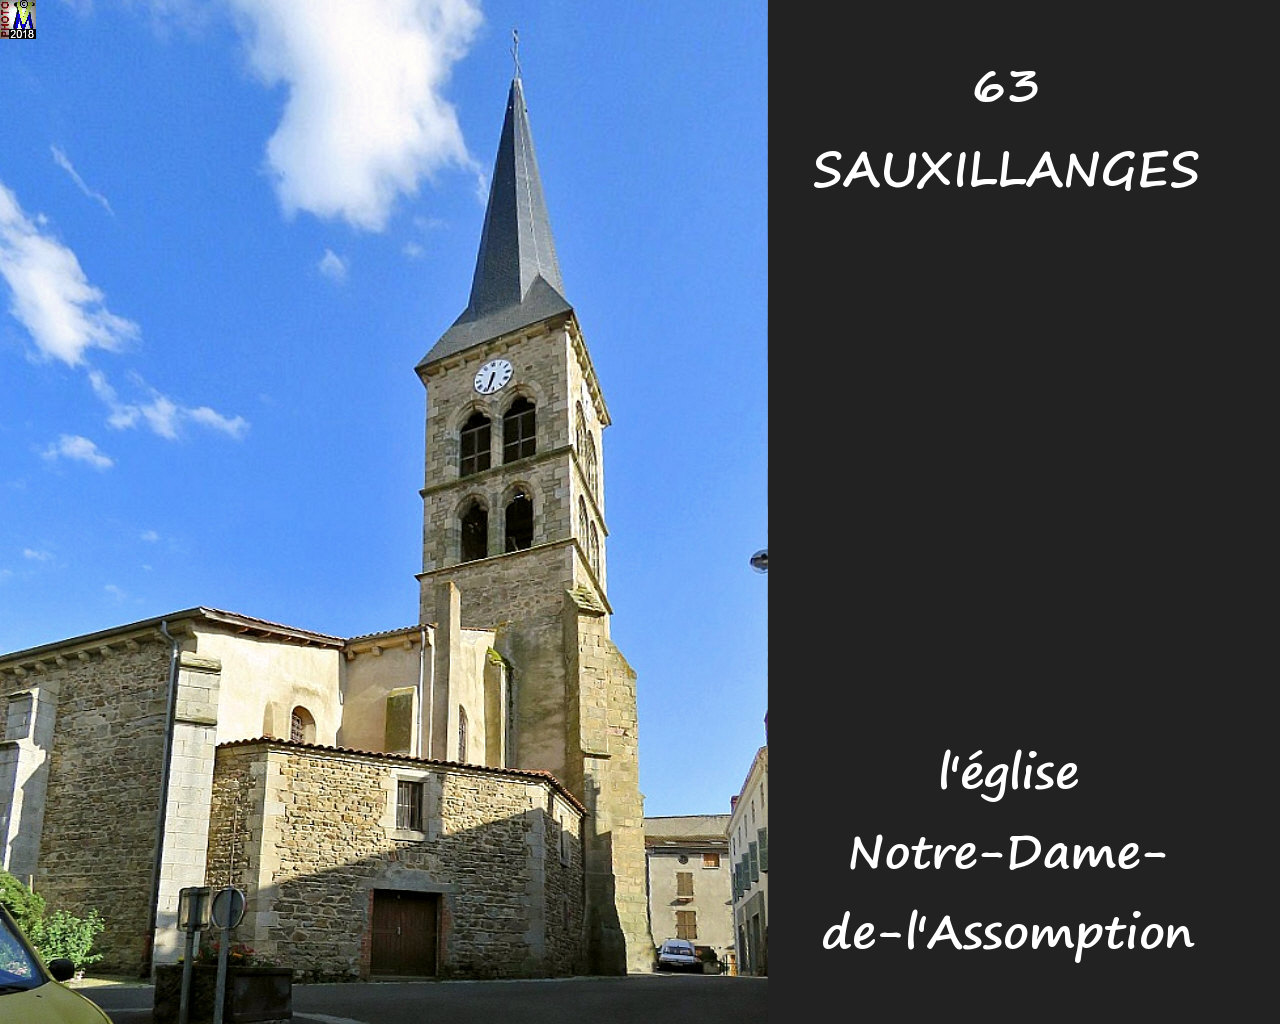 63SAUXILLANGES_eglise_102.jpg